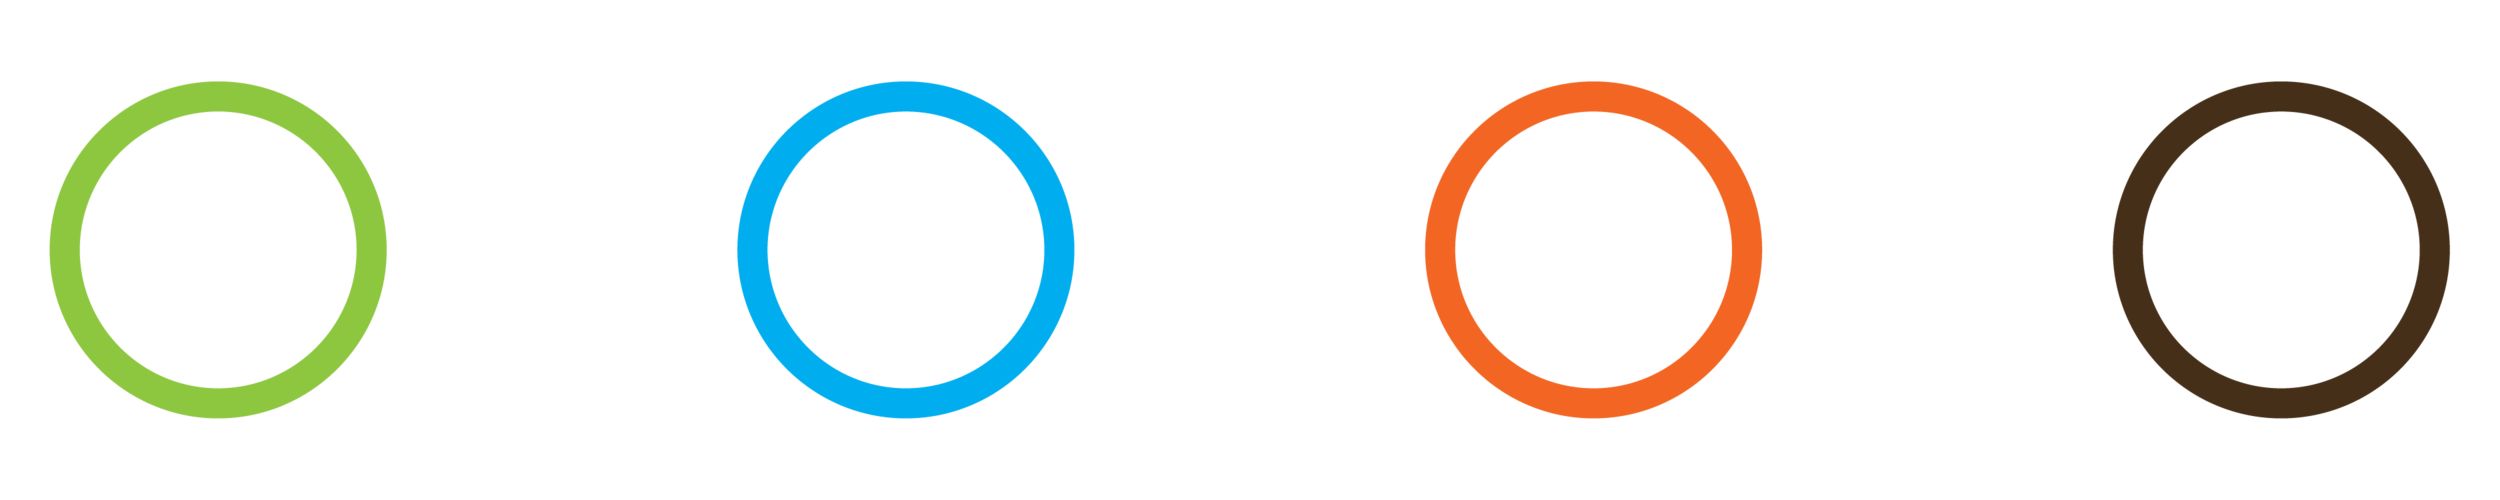 OPEN-MULTI-circles-12in_RGB-01.png